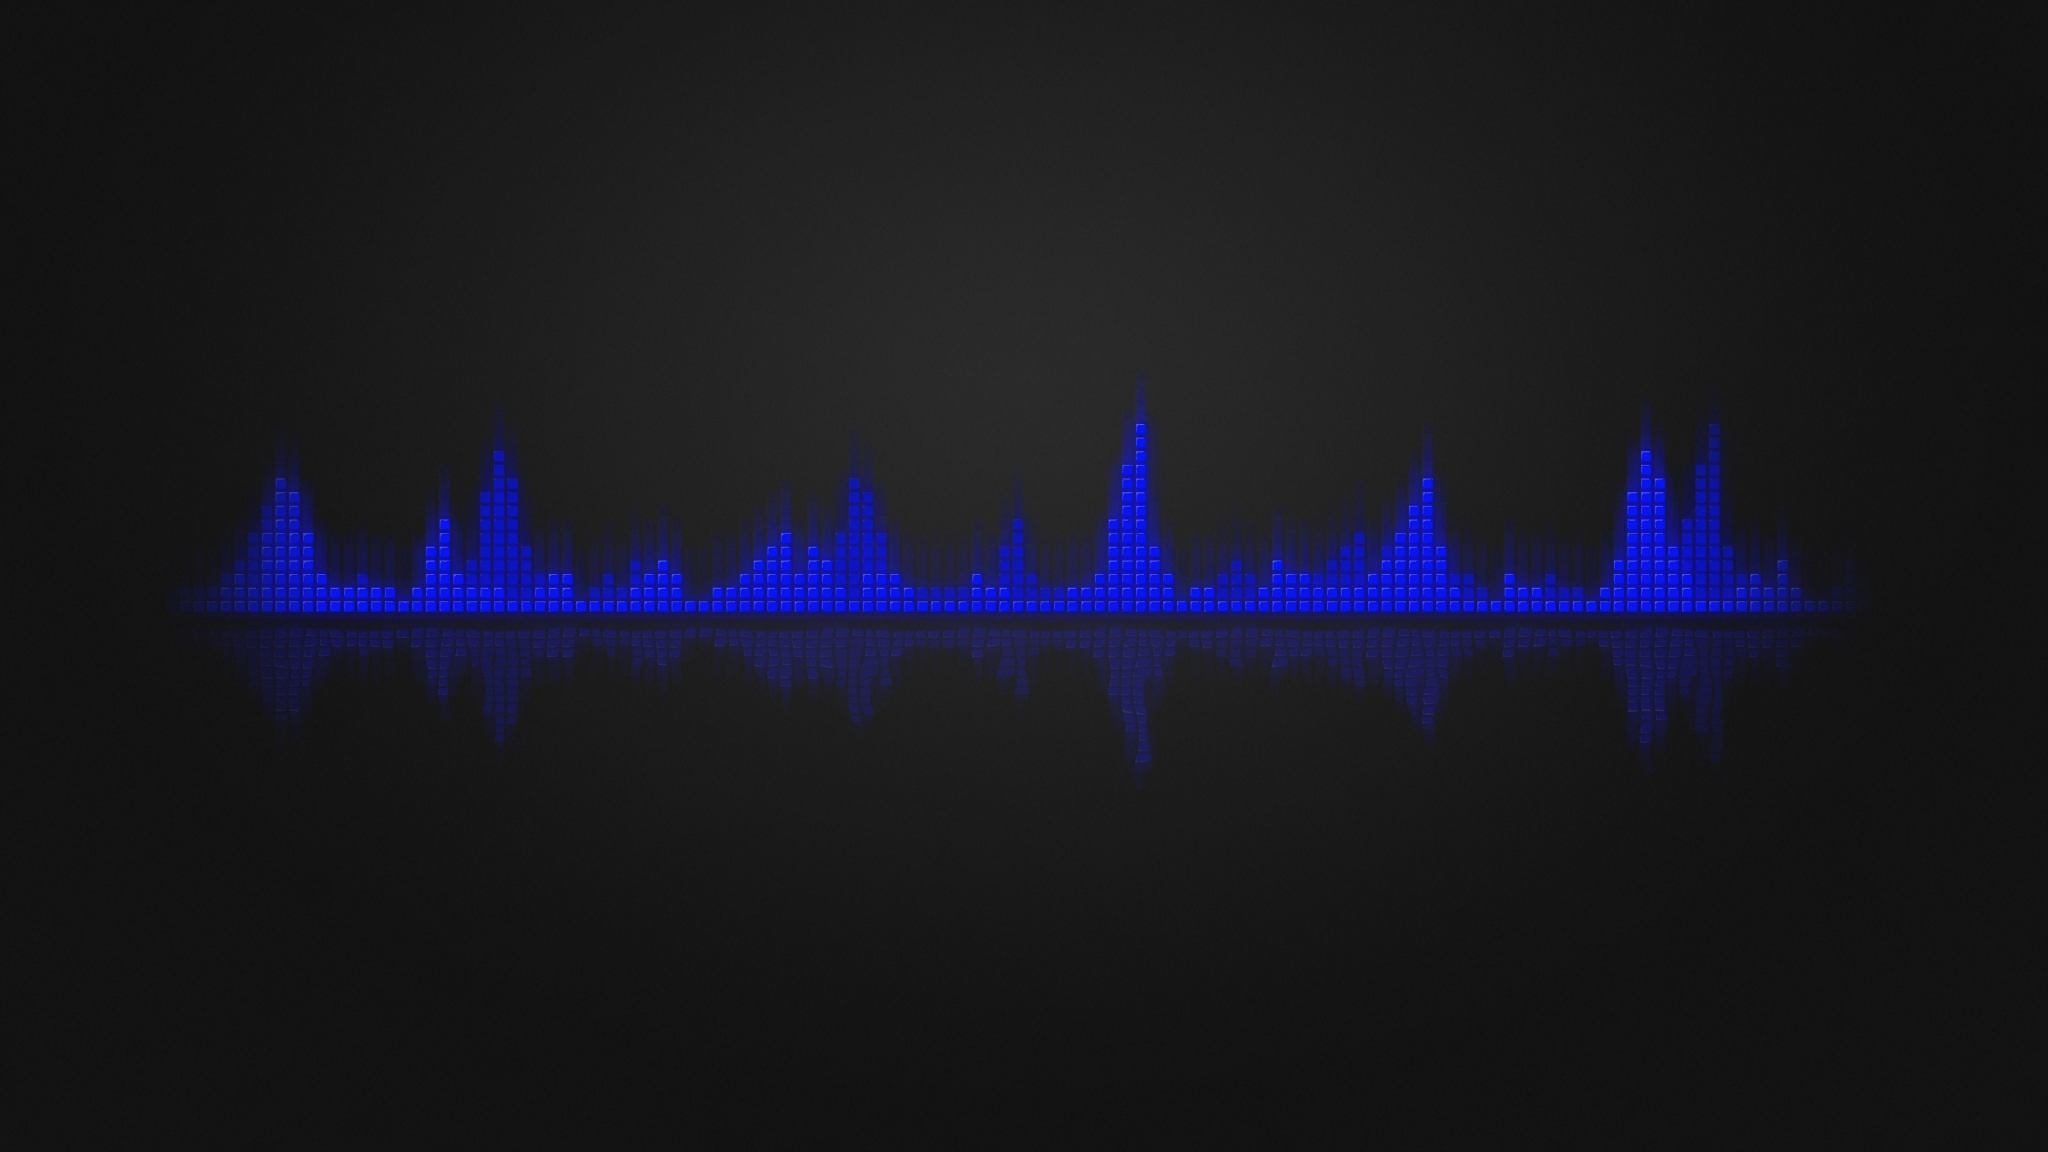 Download Free 3d Music Equalizer Wallpapers Hd: Download Music Equalizer Minimal 1680x1050 Resolution, HD